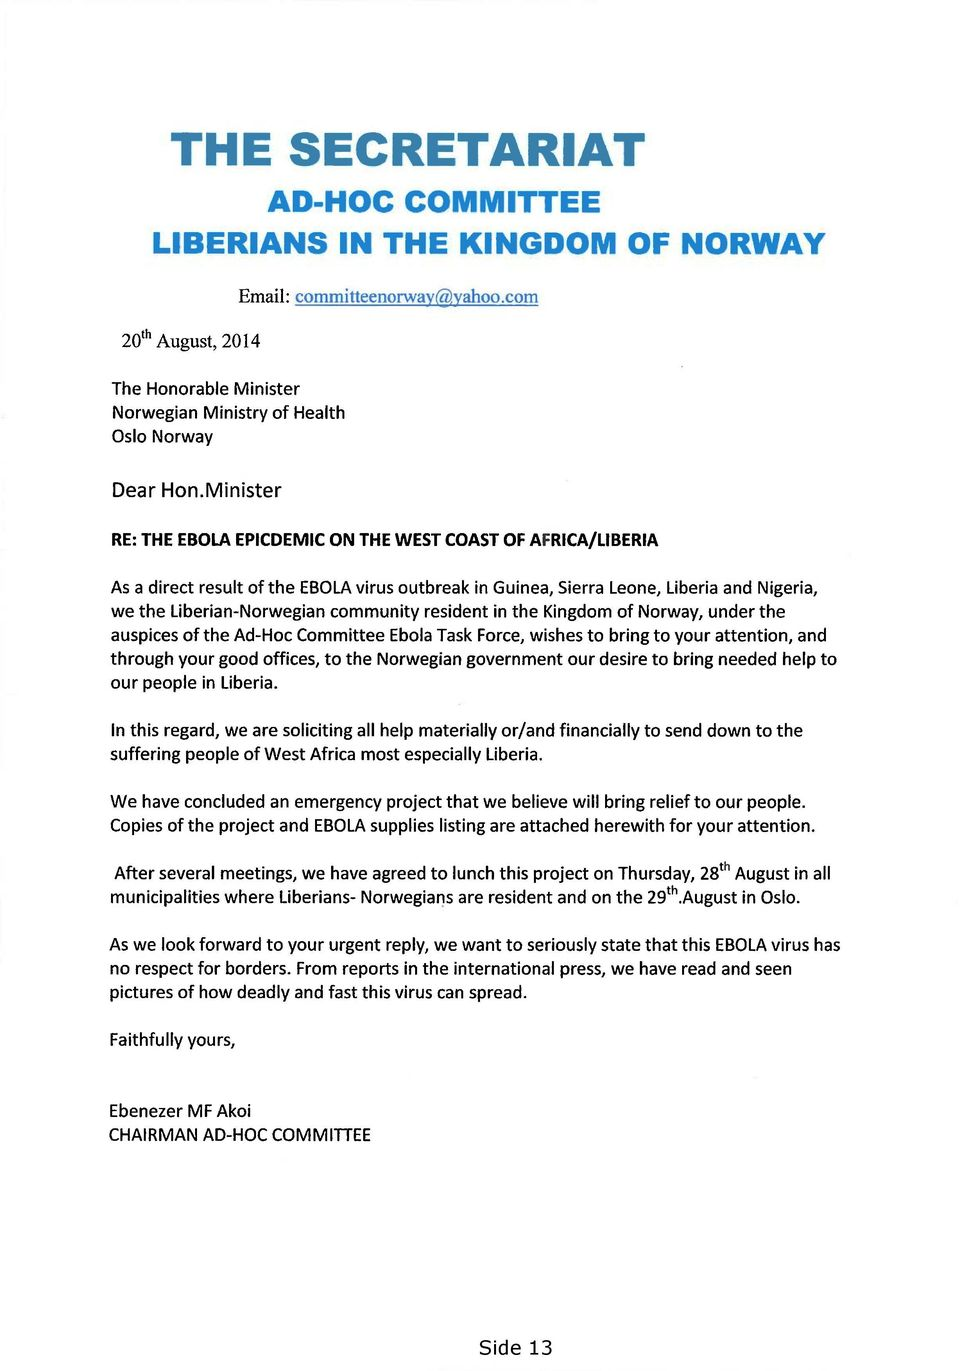 in the Kingdom of Norway, under the auspices of the Ad-Hoc Committee Ebola Task Force, wishes to bring to your attention, and through your good offices, to the Norwegian government our desire to